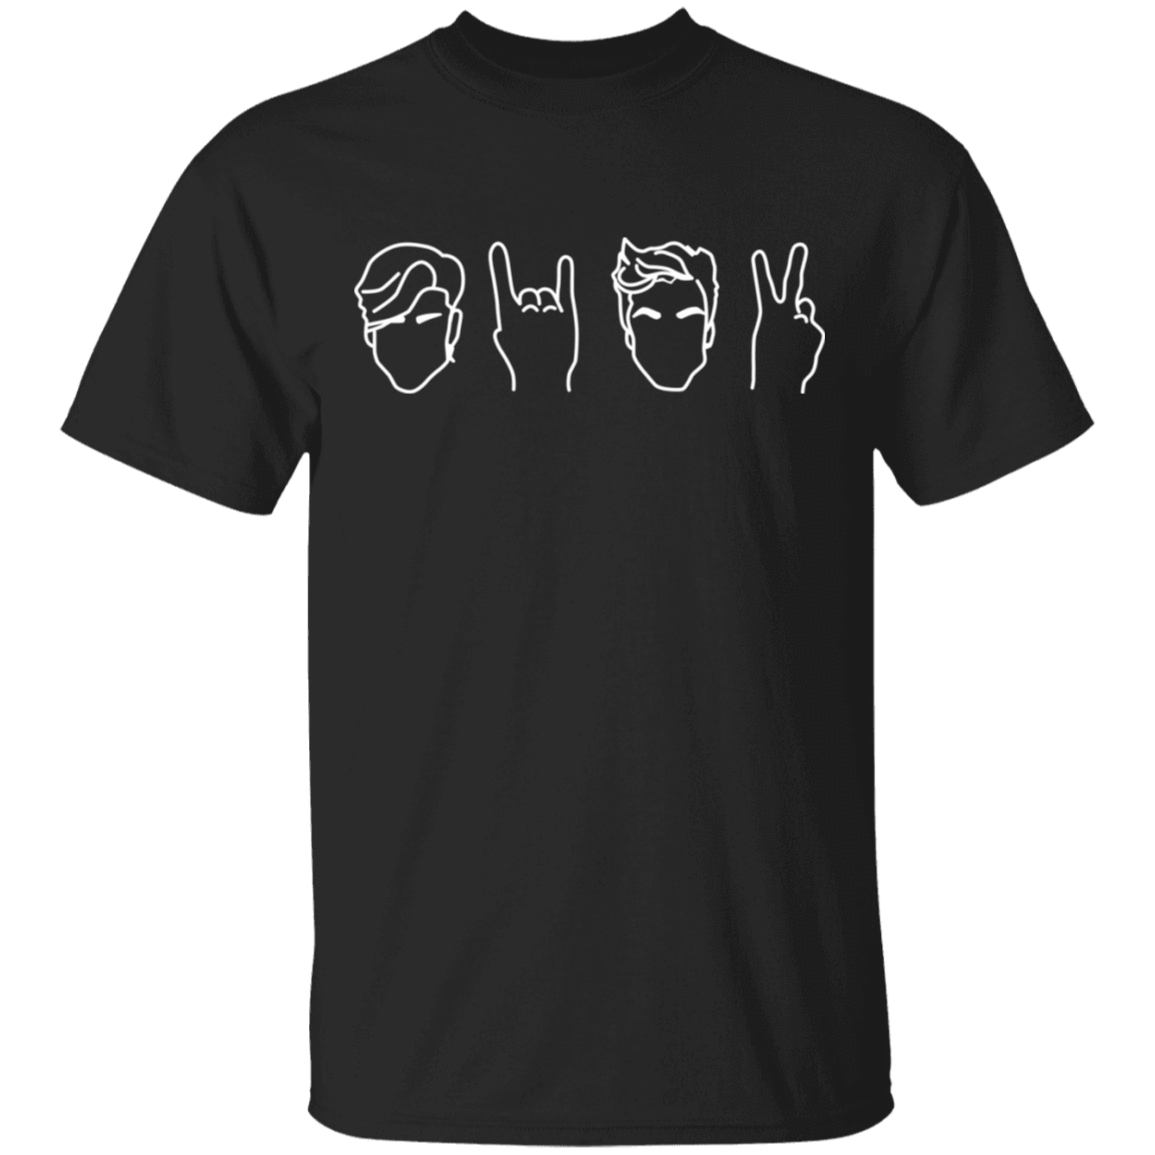 Dolan Twins T-Shirts, Hoodies 22-113-80162978-252 - Tee Ript